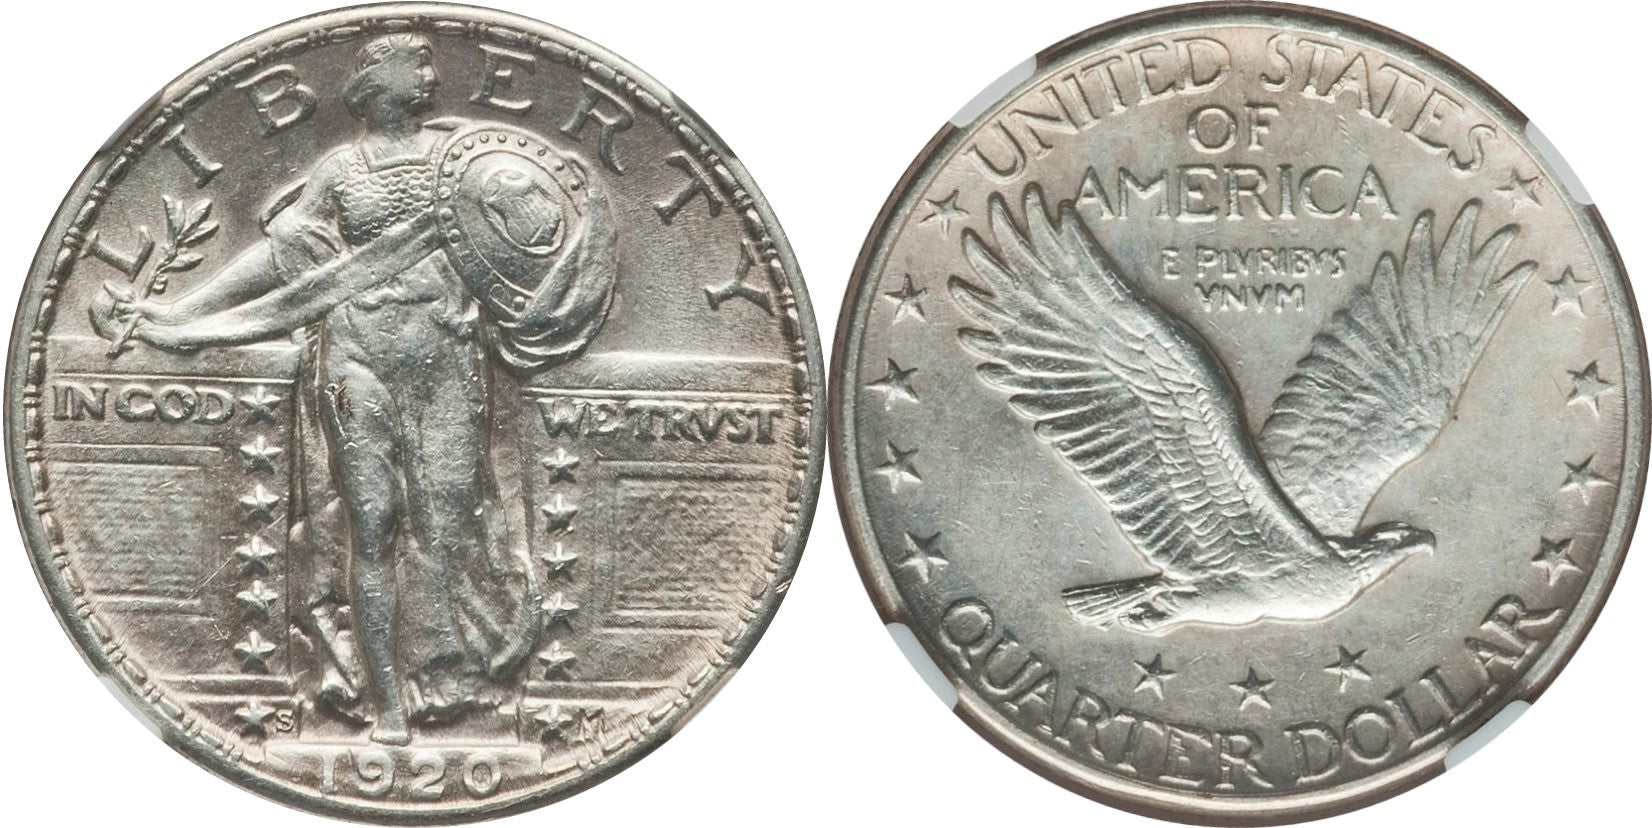 Standing Liberty Quarter MS-60 Condition